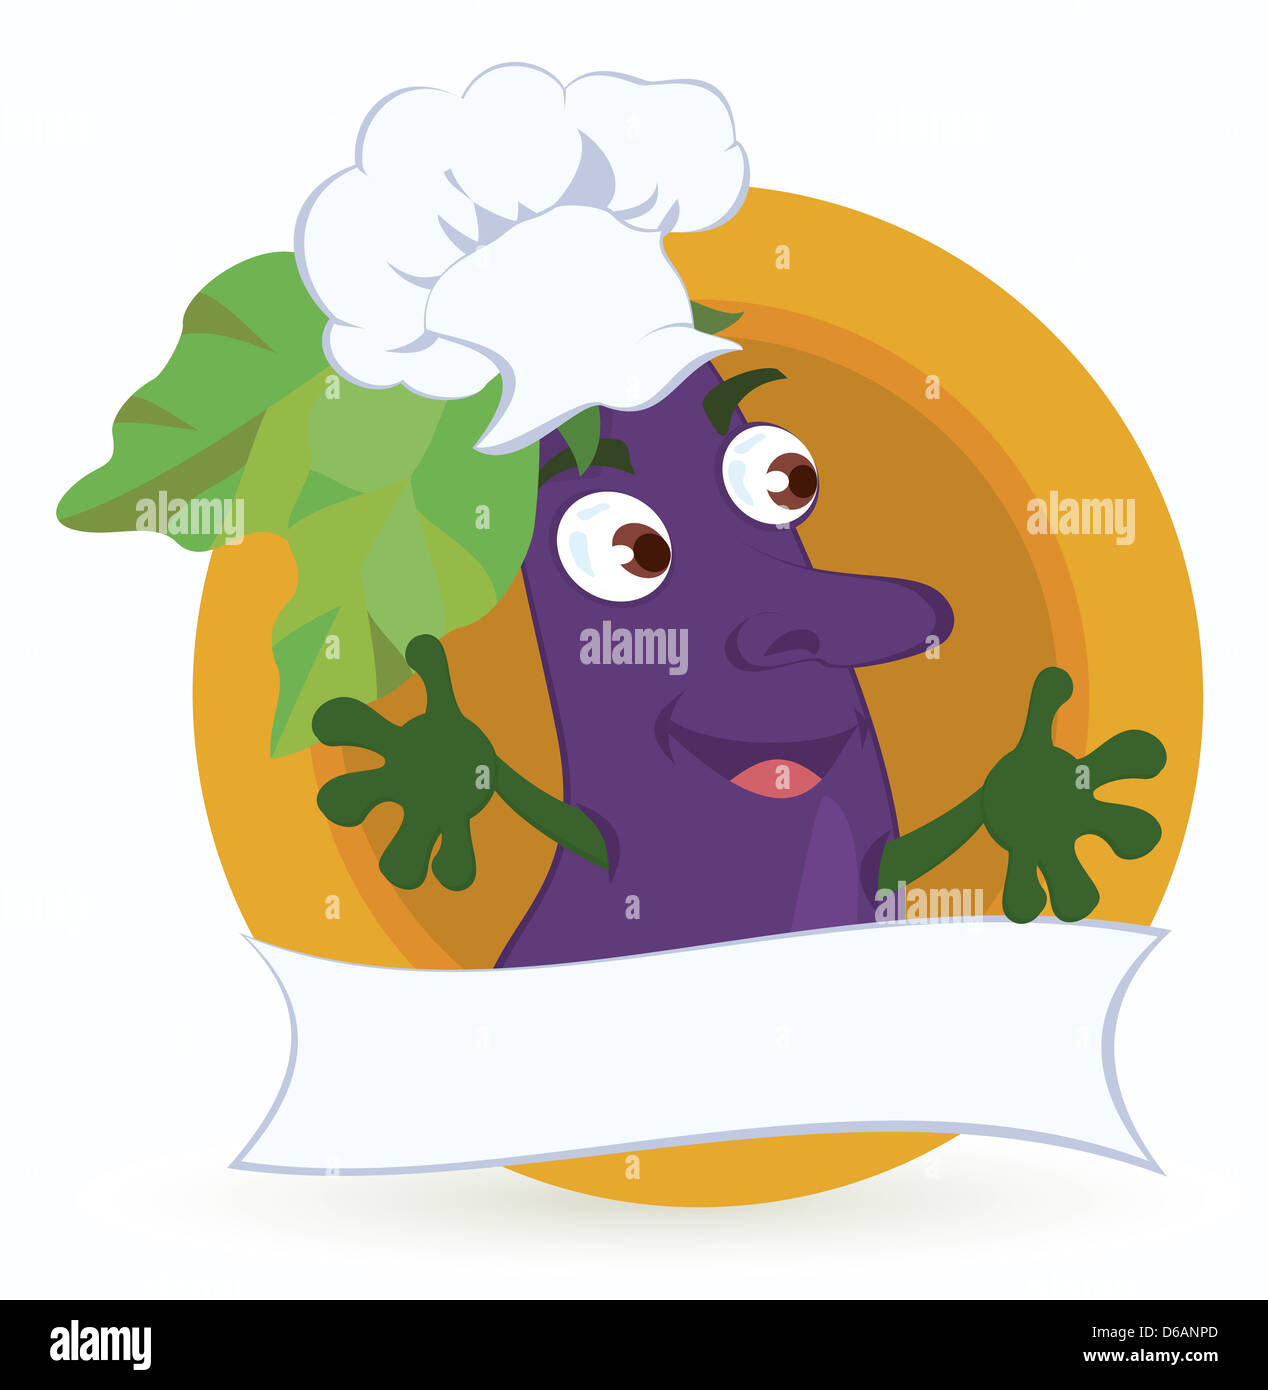 5523d0e35a Eggplant Cartoon Character Stock Photos & Eggplant Cartoon Character ...